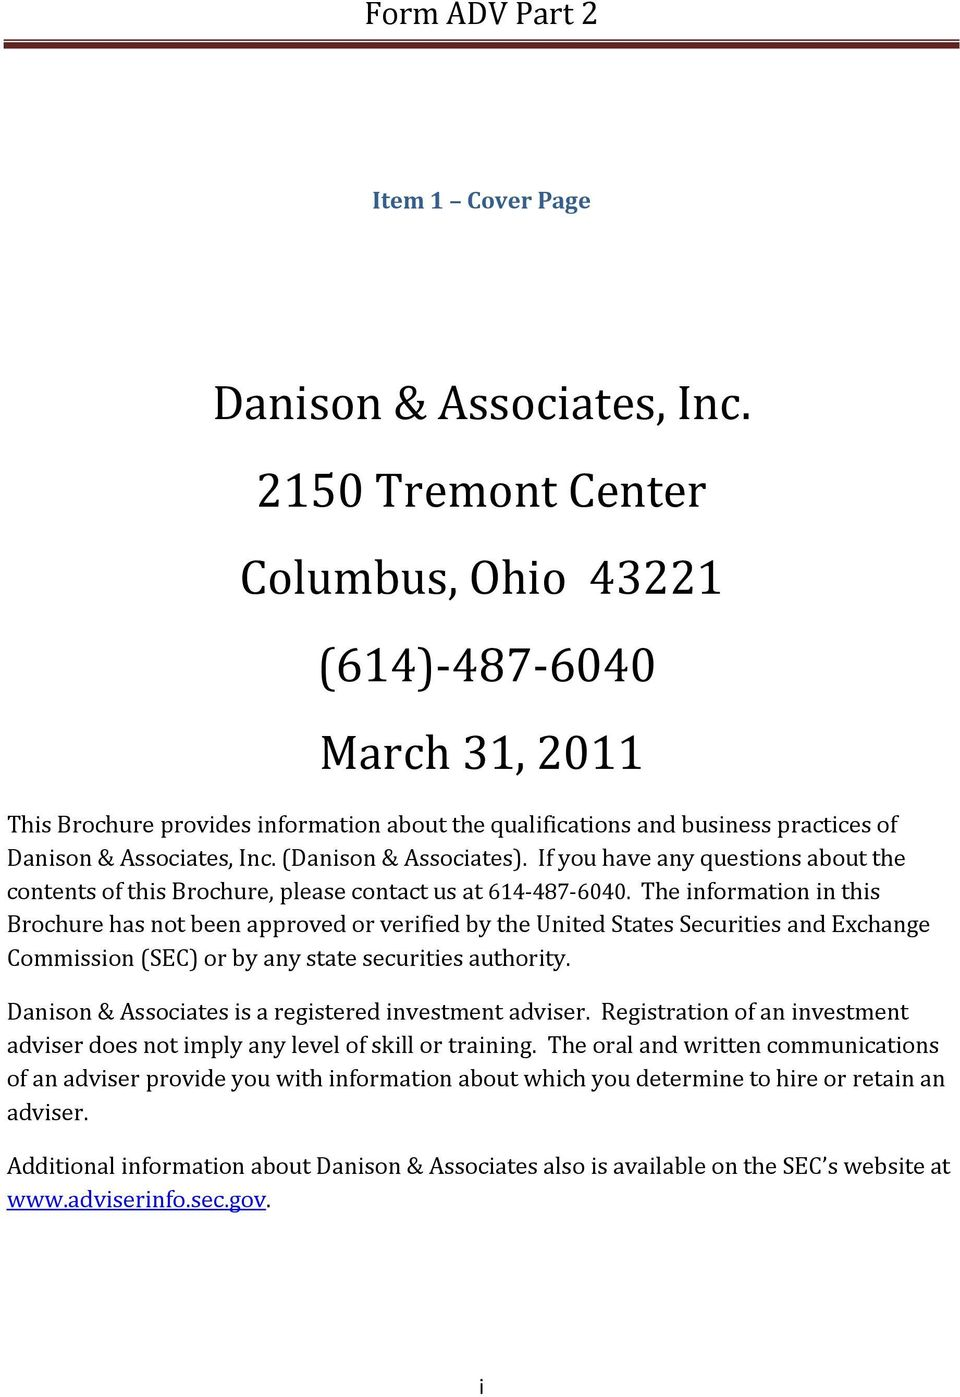 (Danison & Associates). If you have any questions about the contents of this Brochure, please contact us at 614-487-6040.